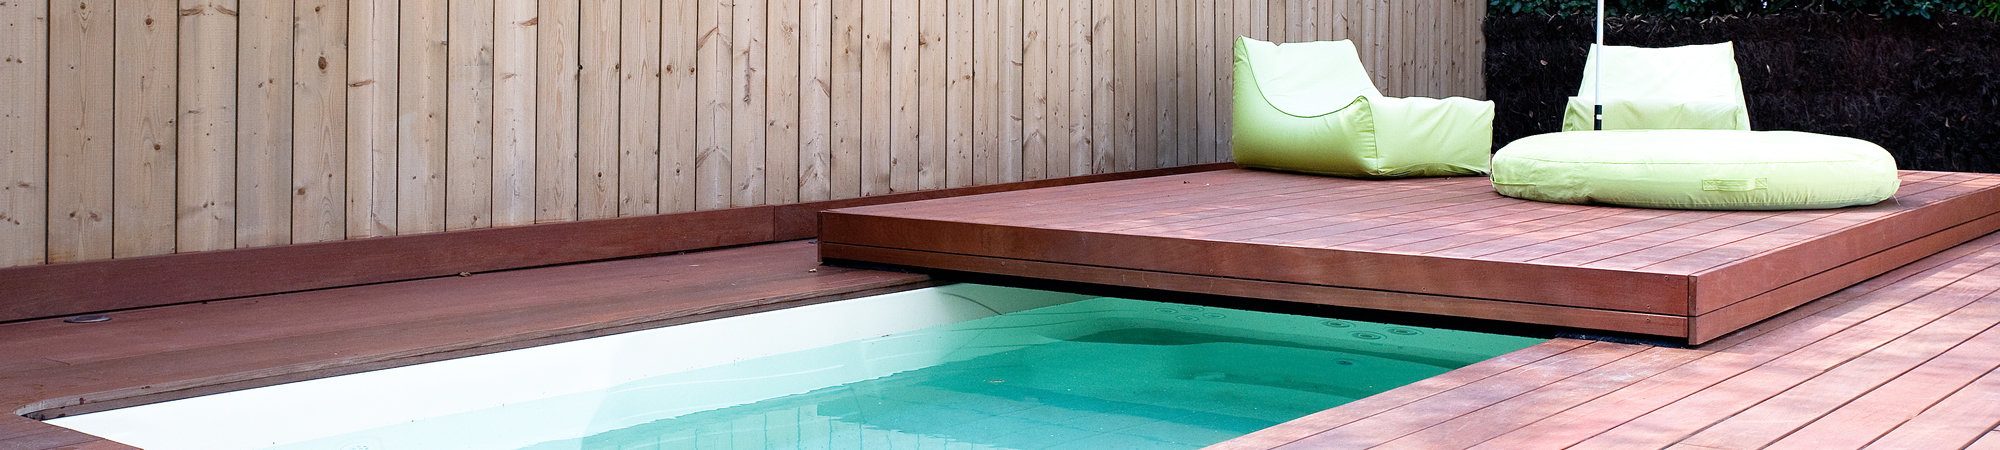 Installation piscine Bordeaux